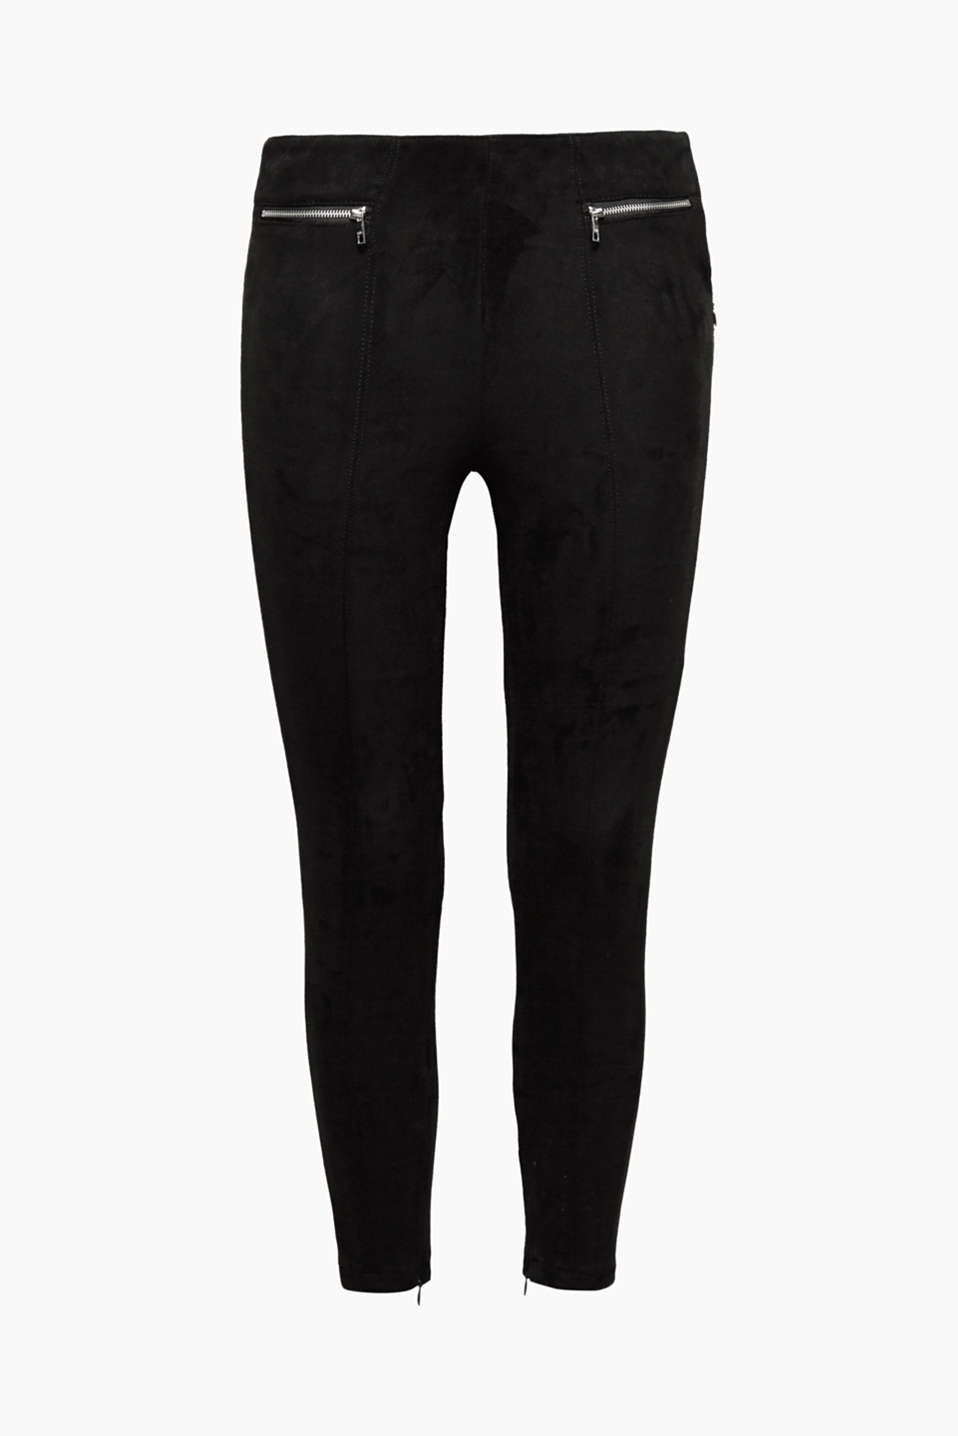 The velvety material of these treggings with cool front zips highlights the sexy, figure-skimming cut perfectly!